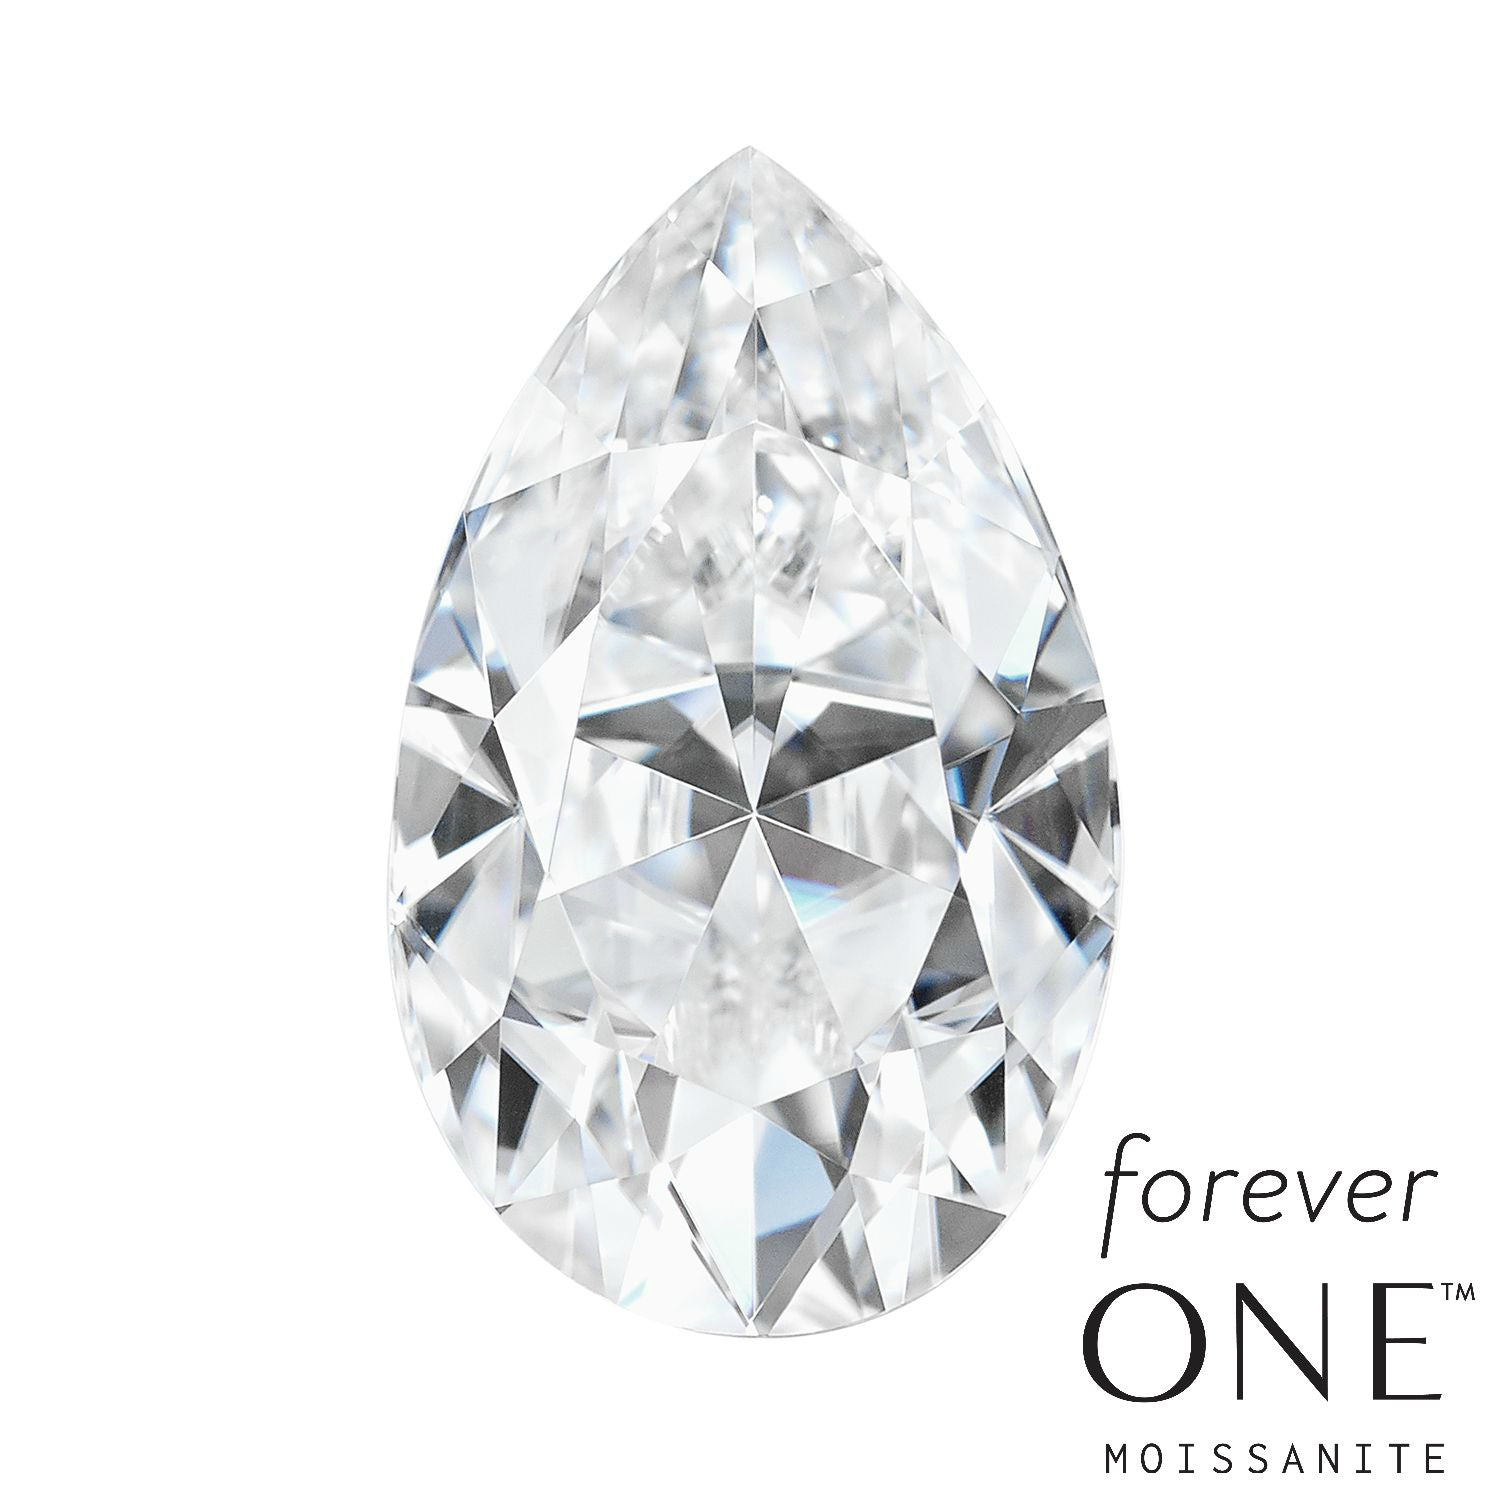 loose moissanite amazonaws one media shape gemstone pear products rings foreverone forever